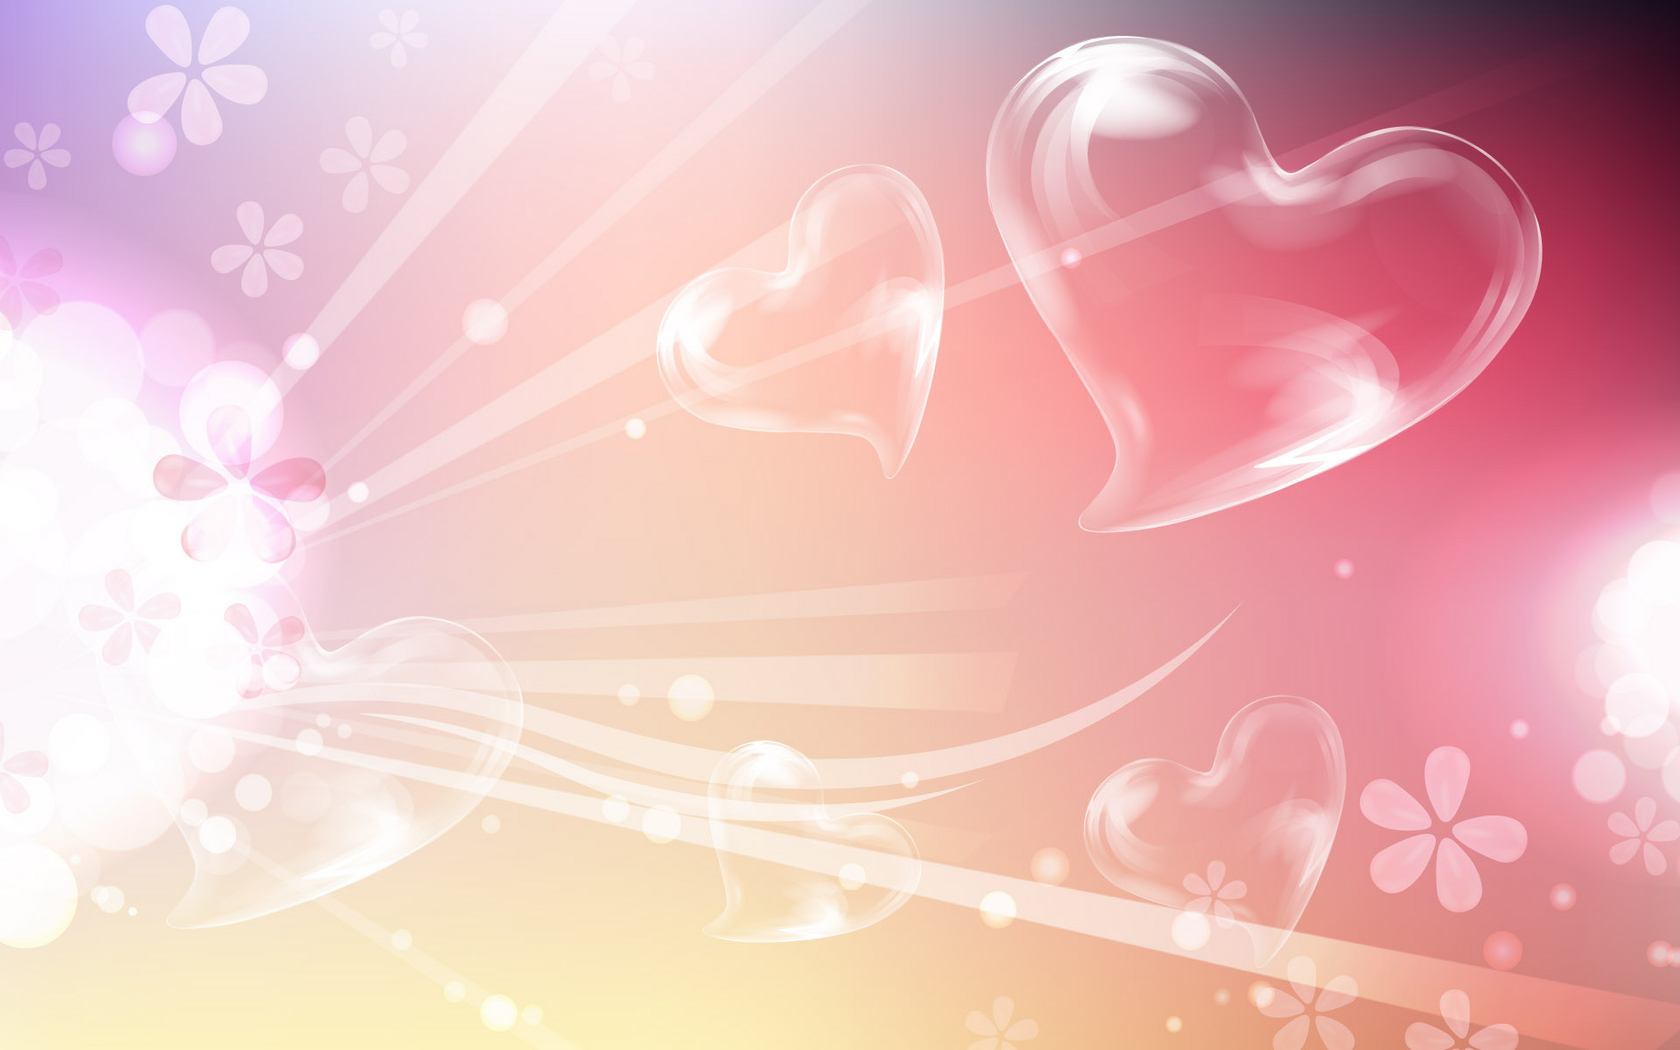 Love Images Hd And 3d : Love wallpapers hd, amor fondos de pantalla, love 3D